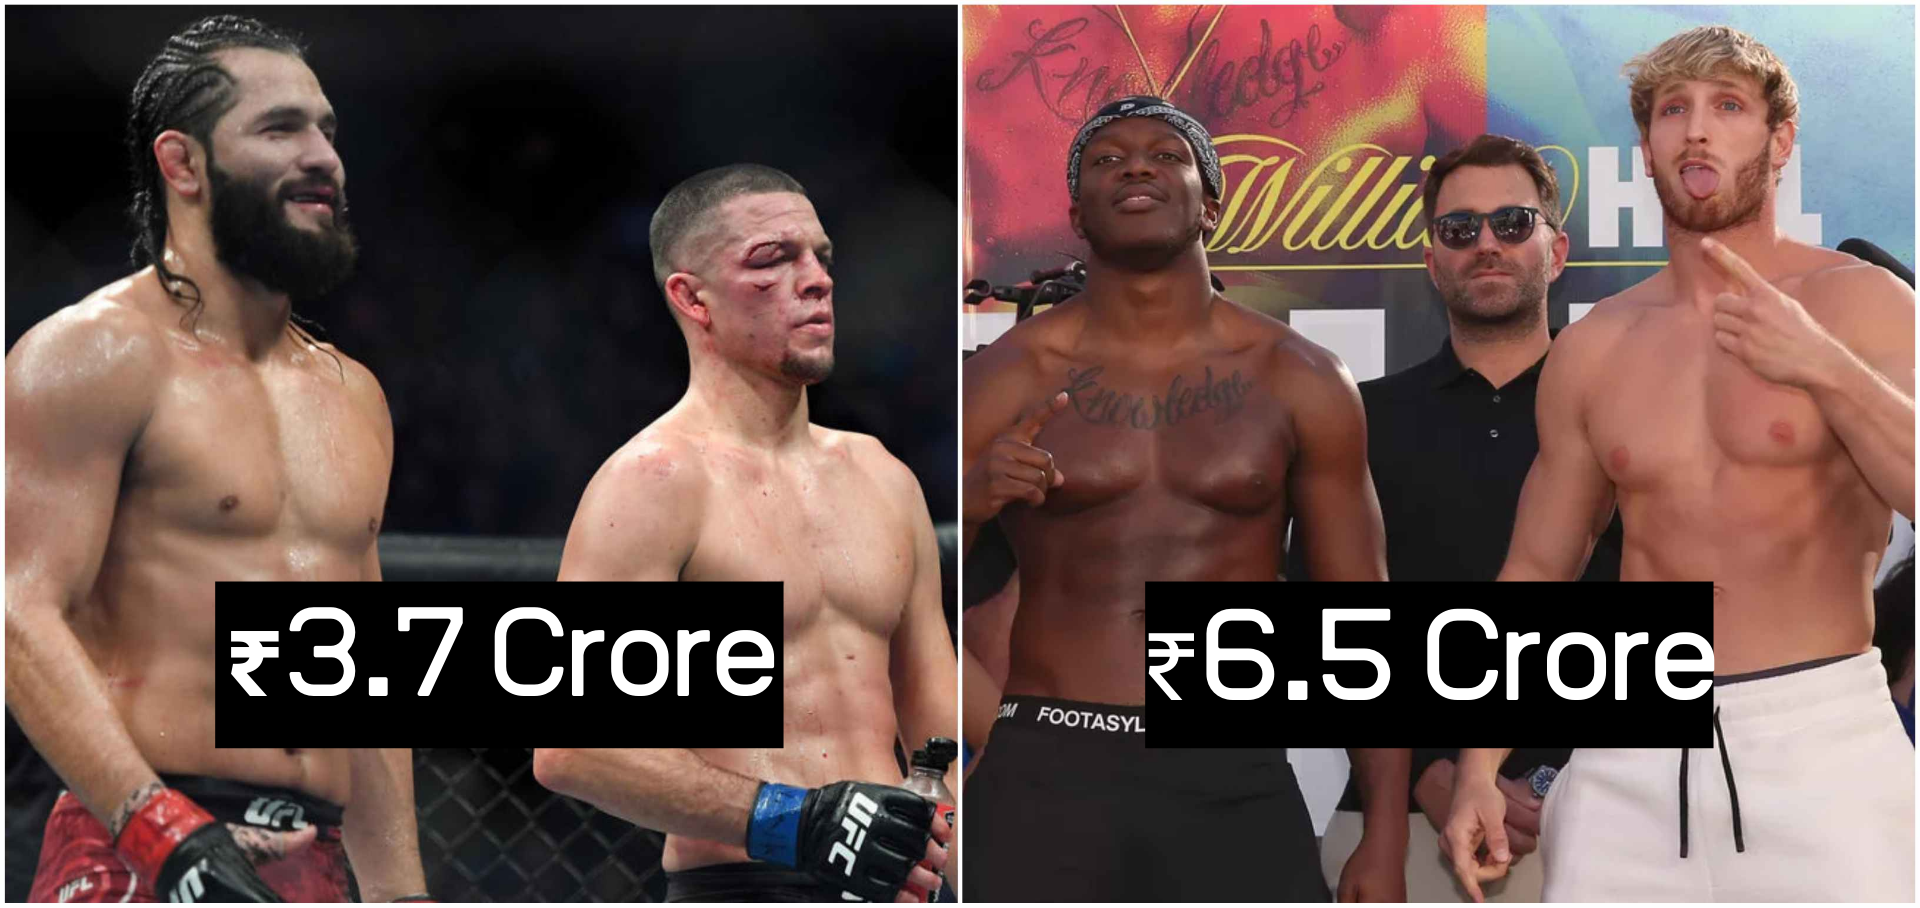 KSI and Logan Paul to make $400K more for their fight than Diaz and Masvidal made at UFC 244 - KSI